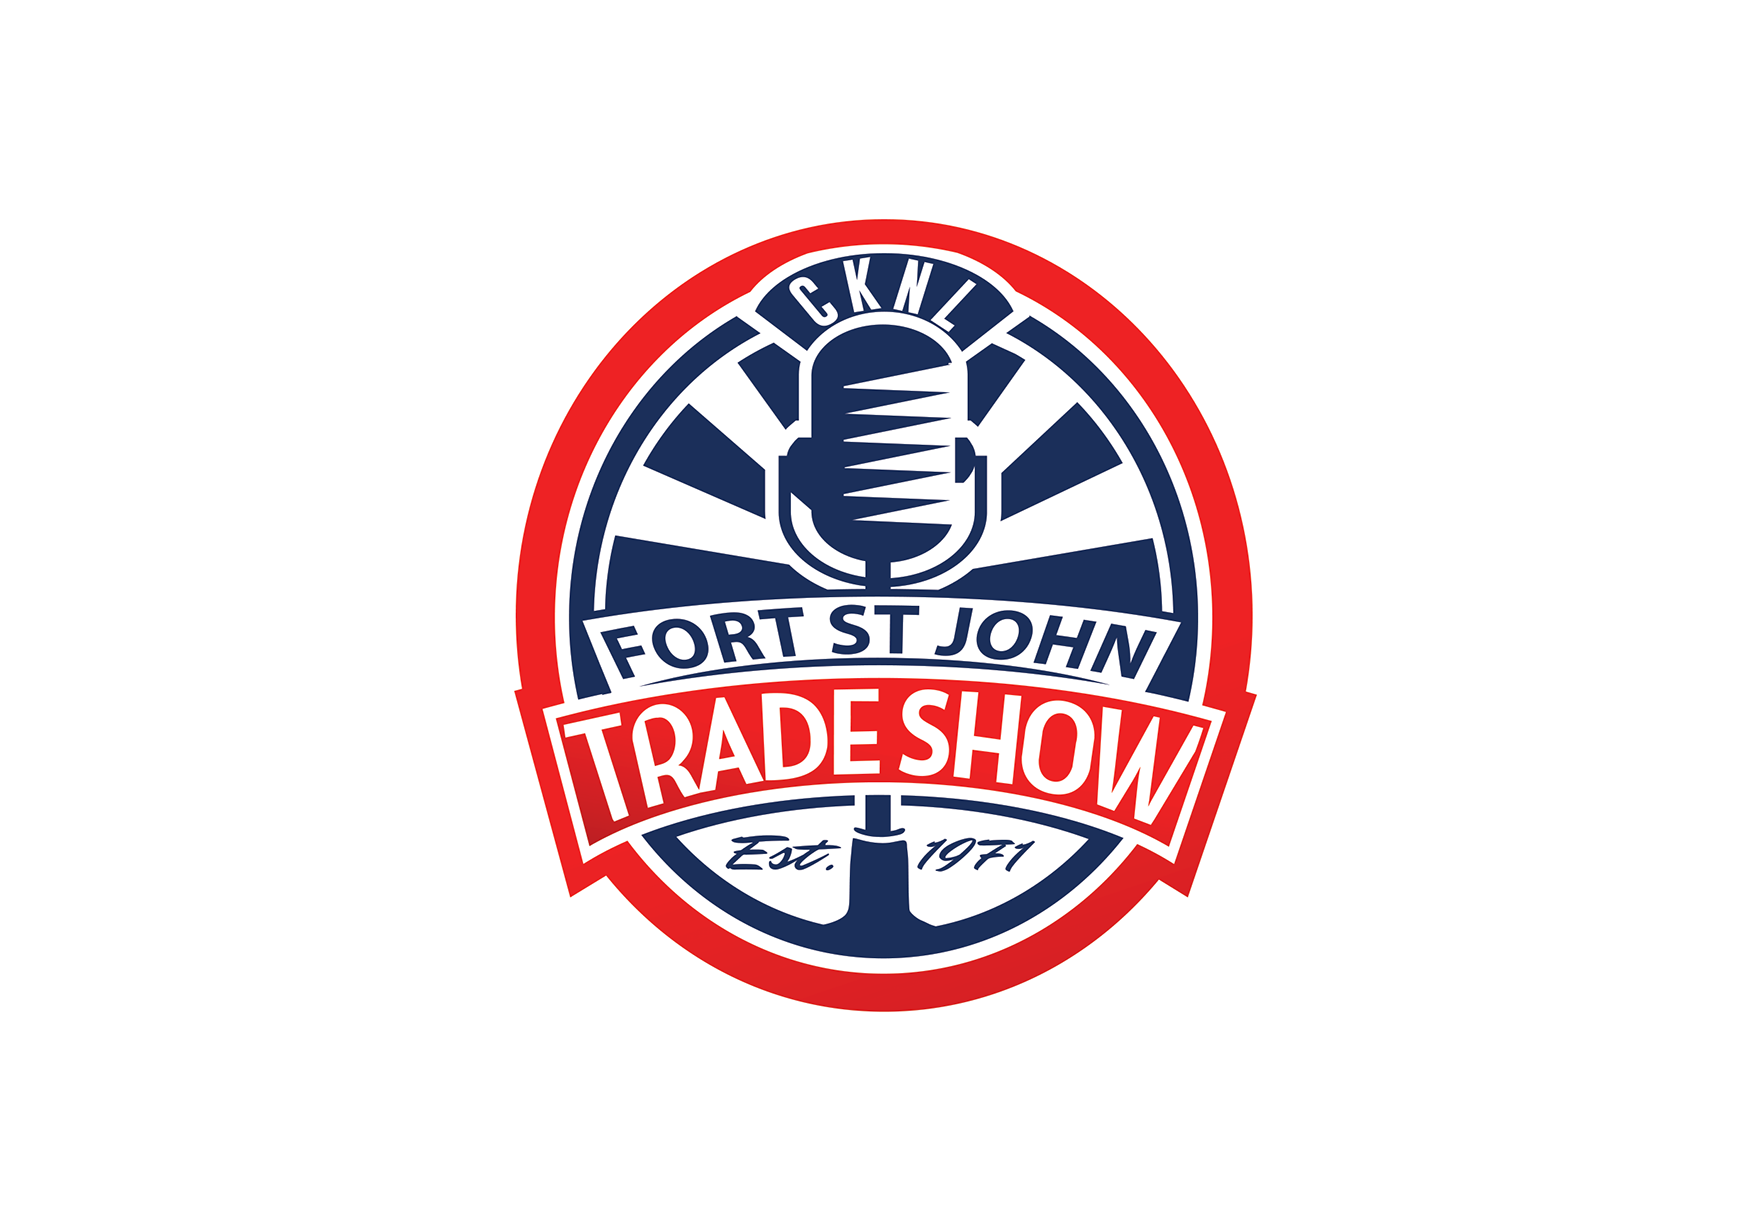 Fort St. John Trade Show needs a vibrant new look - we're 43 years young and need a new identity